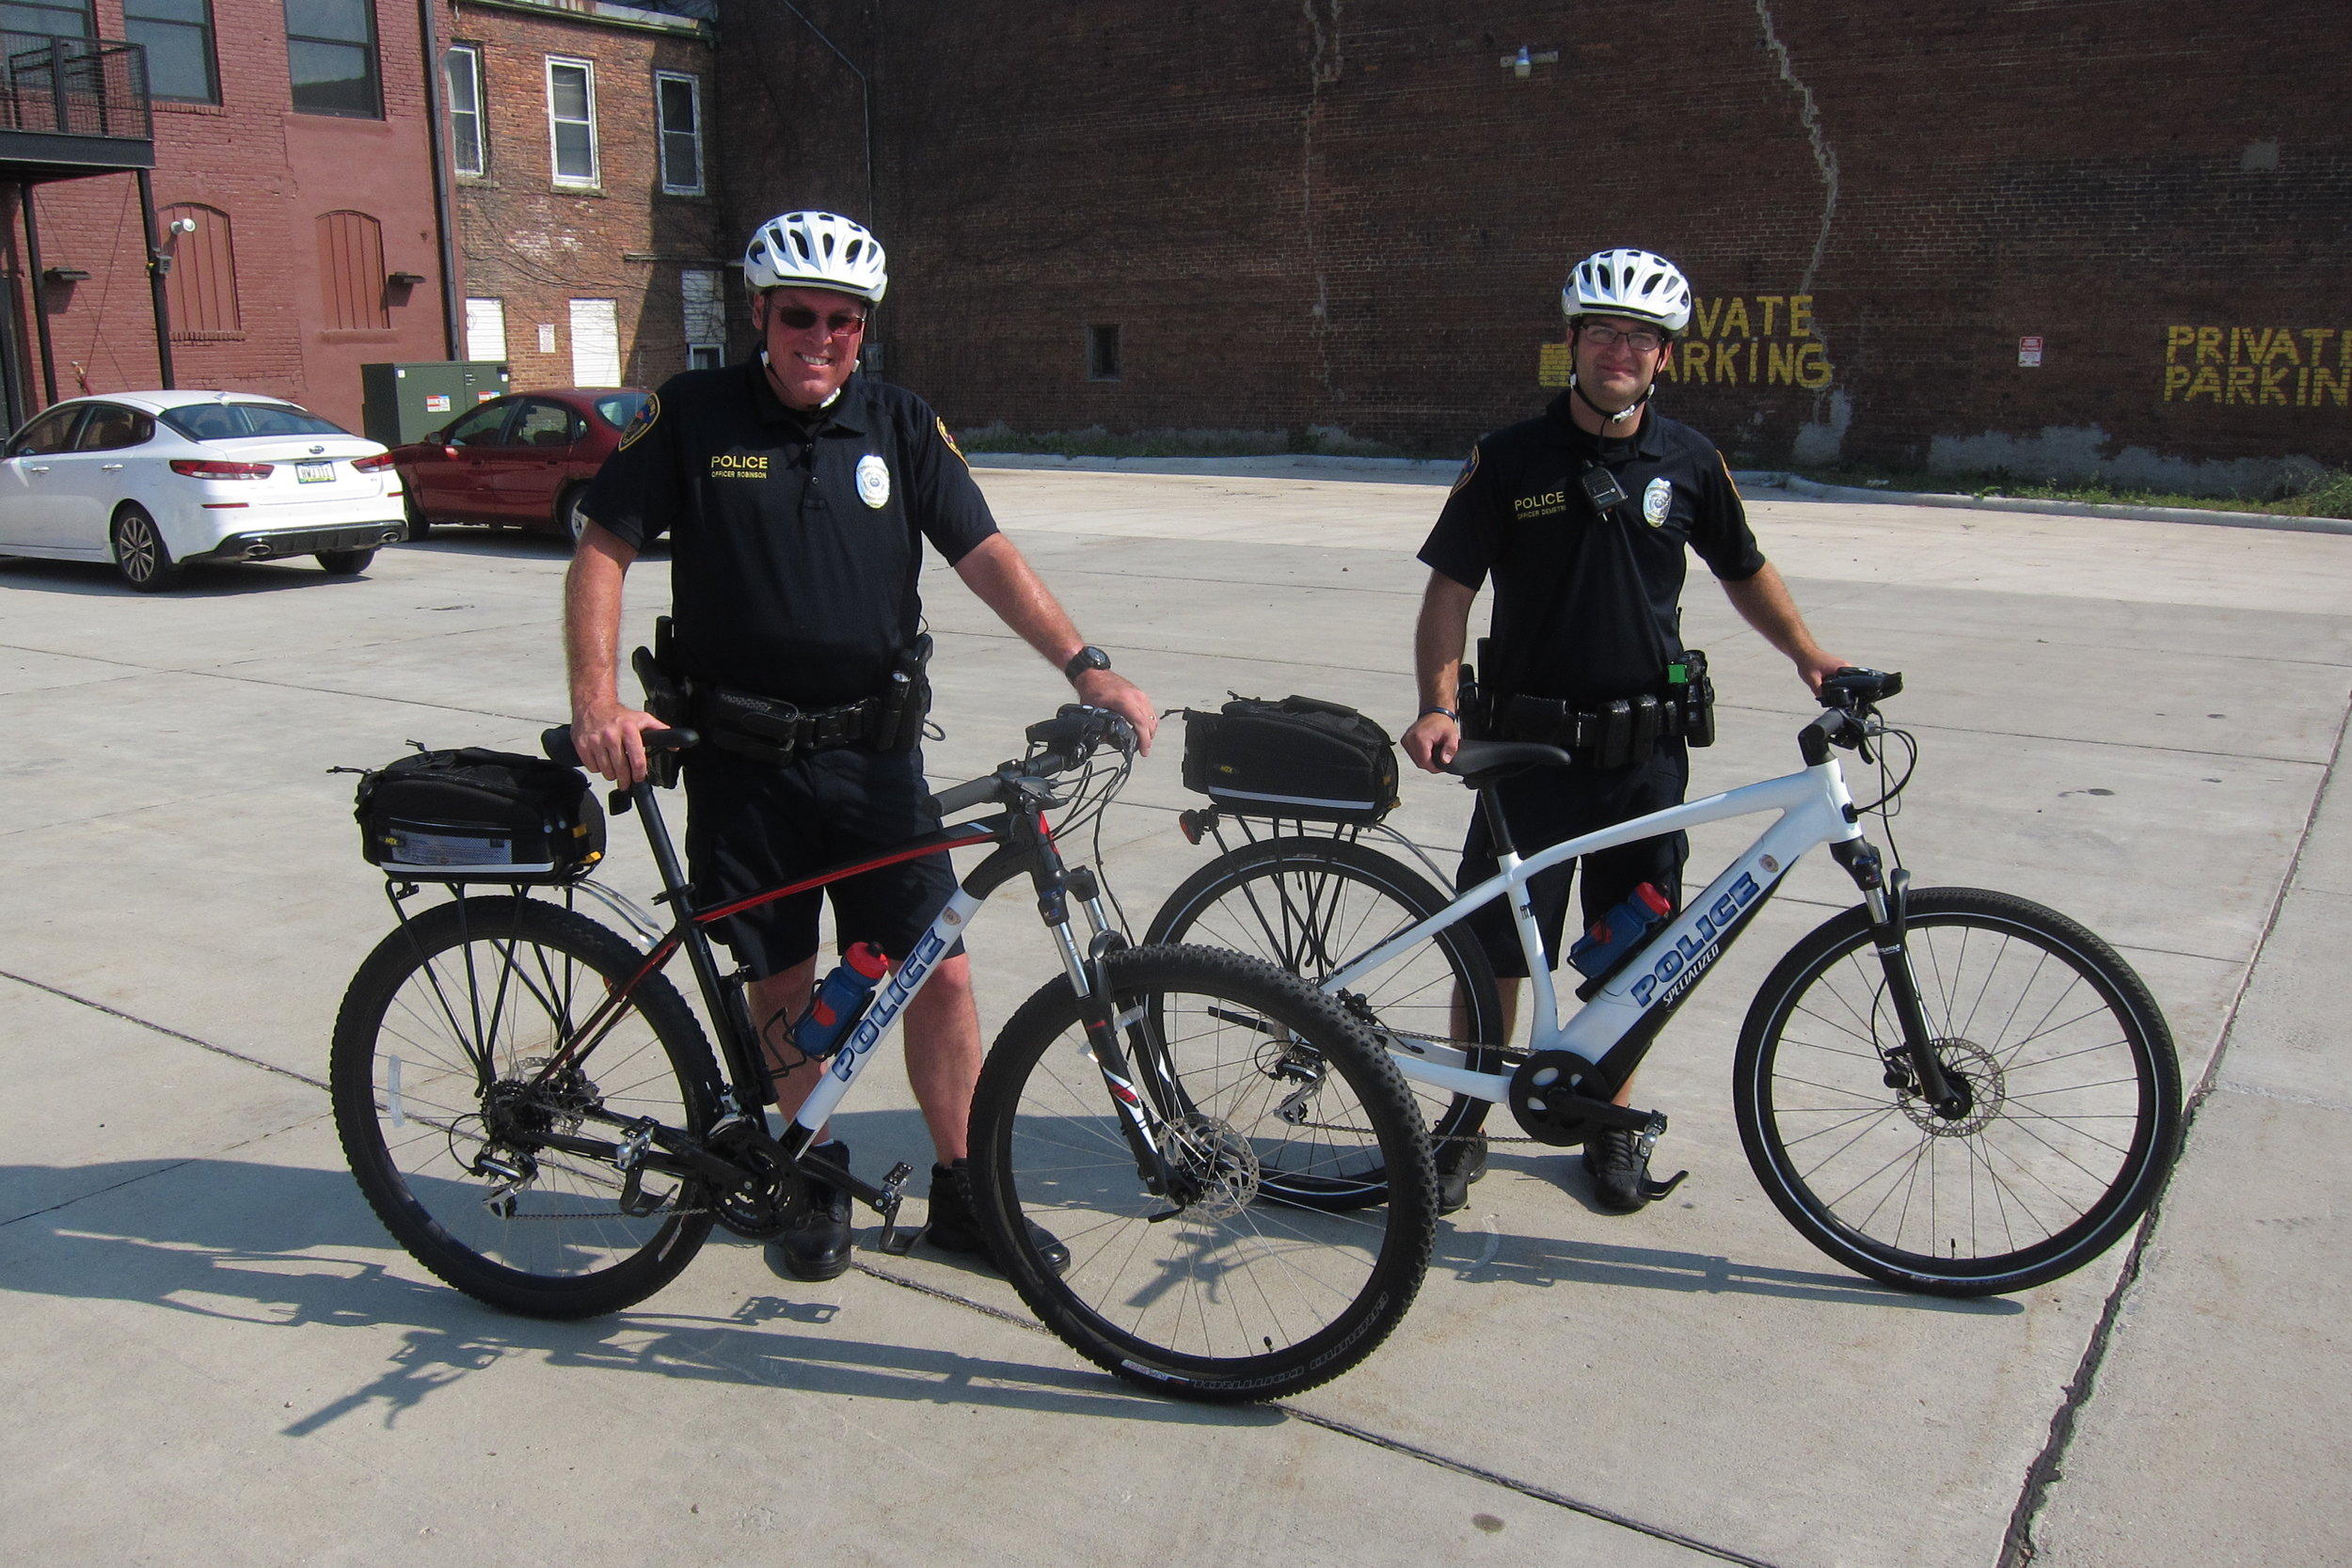 Officers Shawn Robinson and Jeff Demetri are two of the officers trained for bike patrol. The SCPD started the program in an effort to continue build partnerships with the community and make officers more approachable.